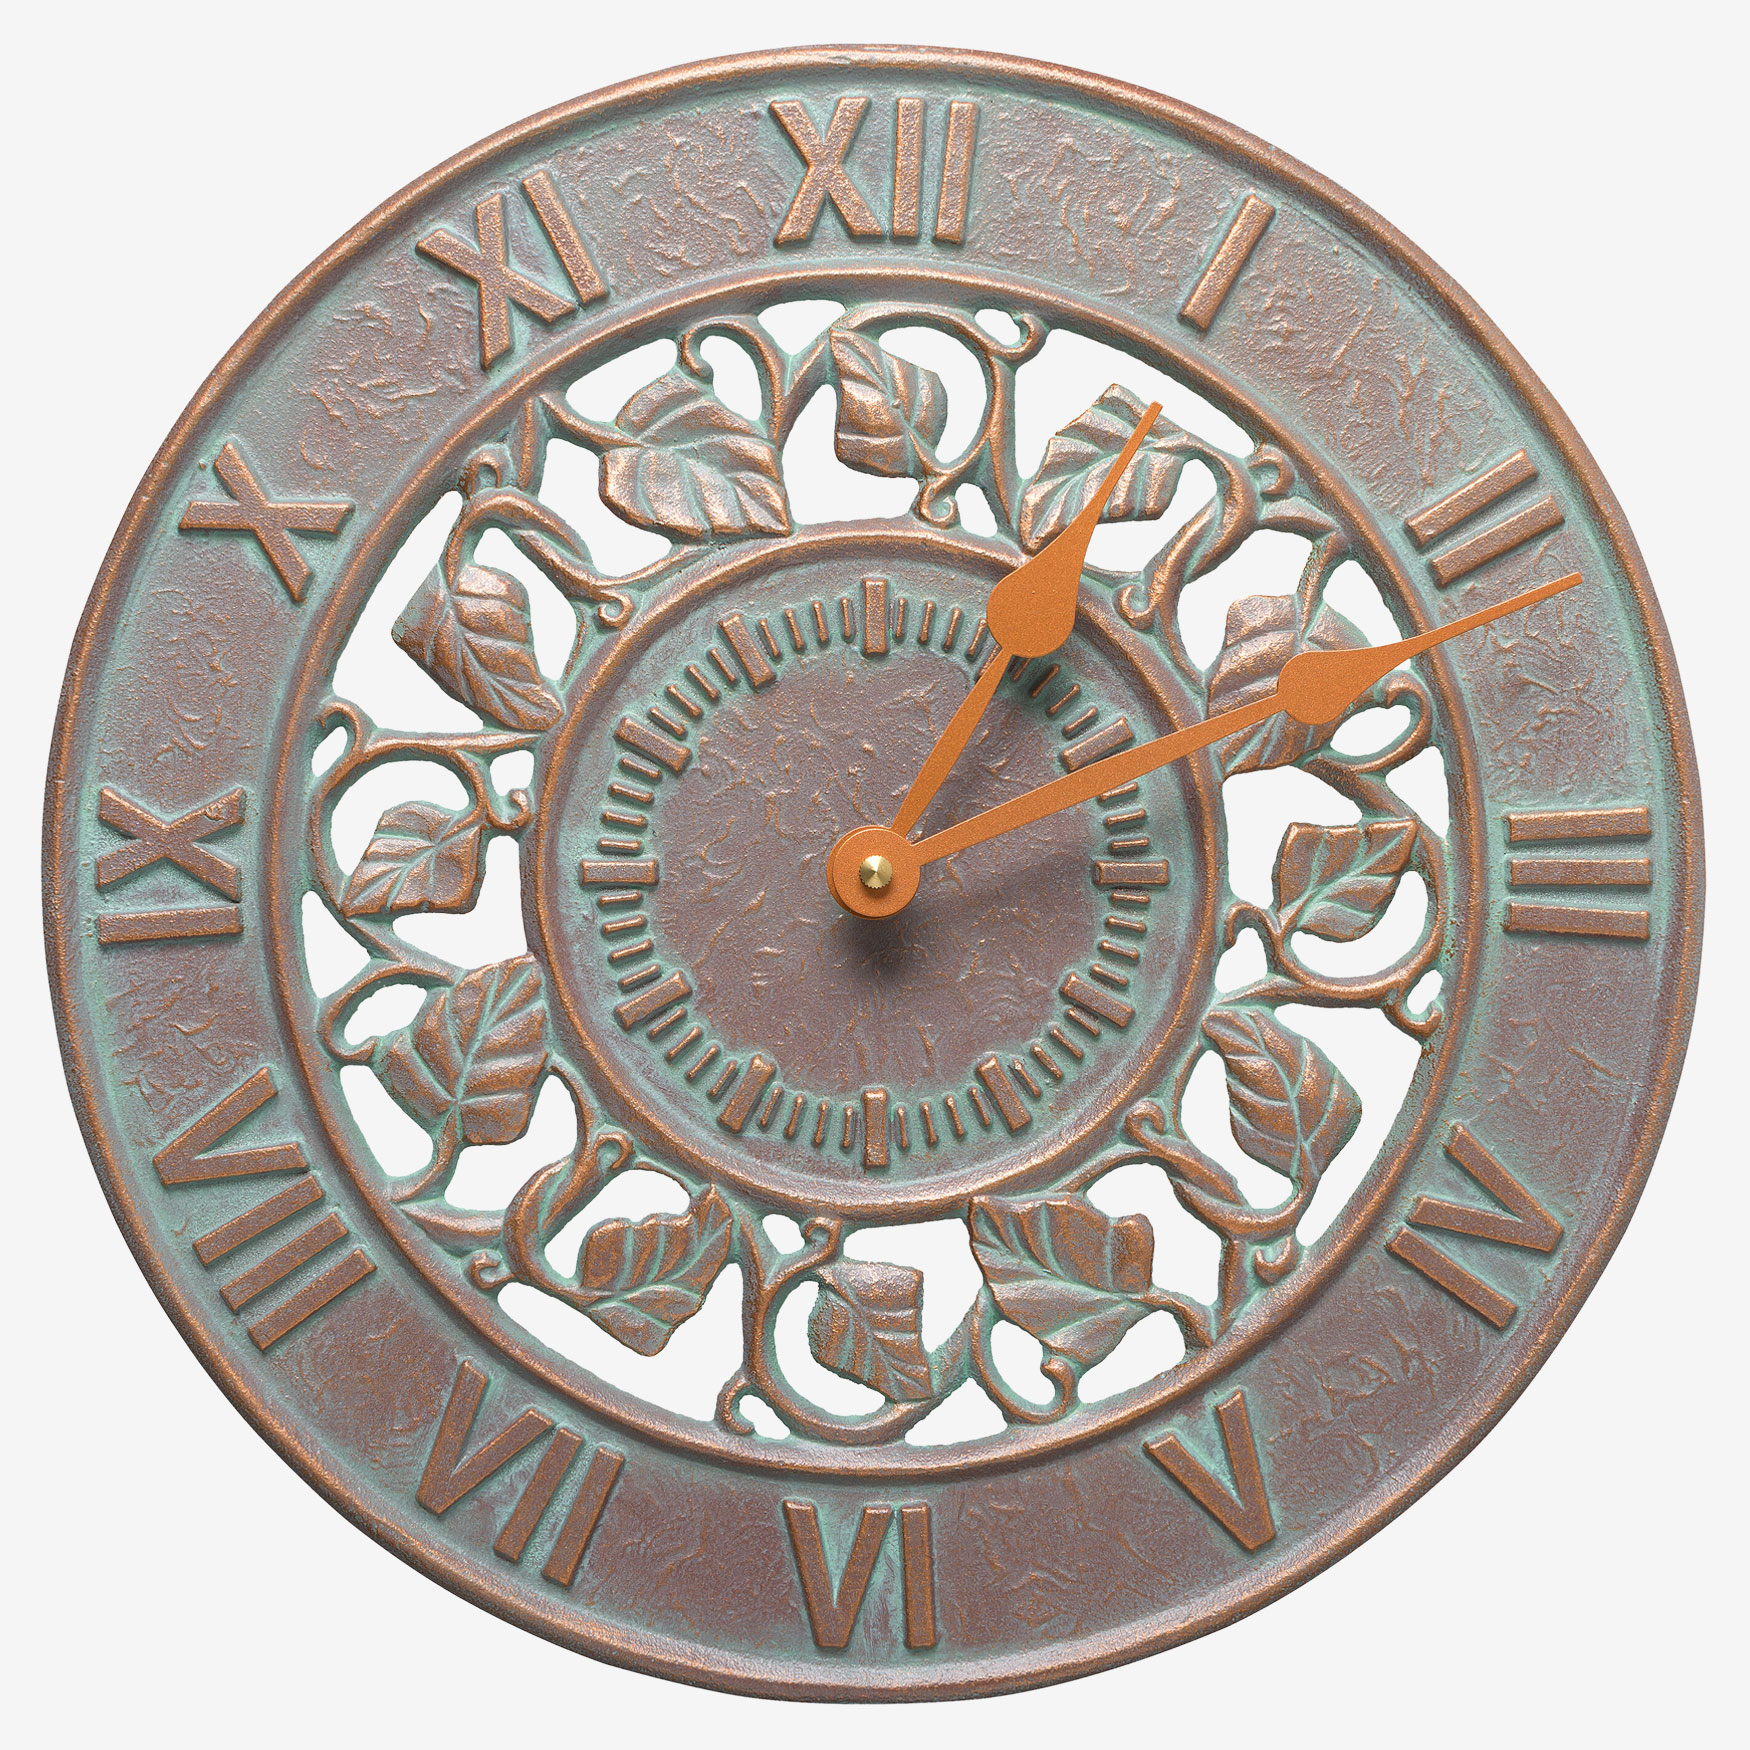 Ivy Silhouette 12' Indoor Outdoor Wall Clock, COPPER VERDIGRIS